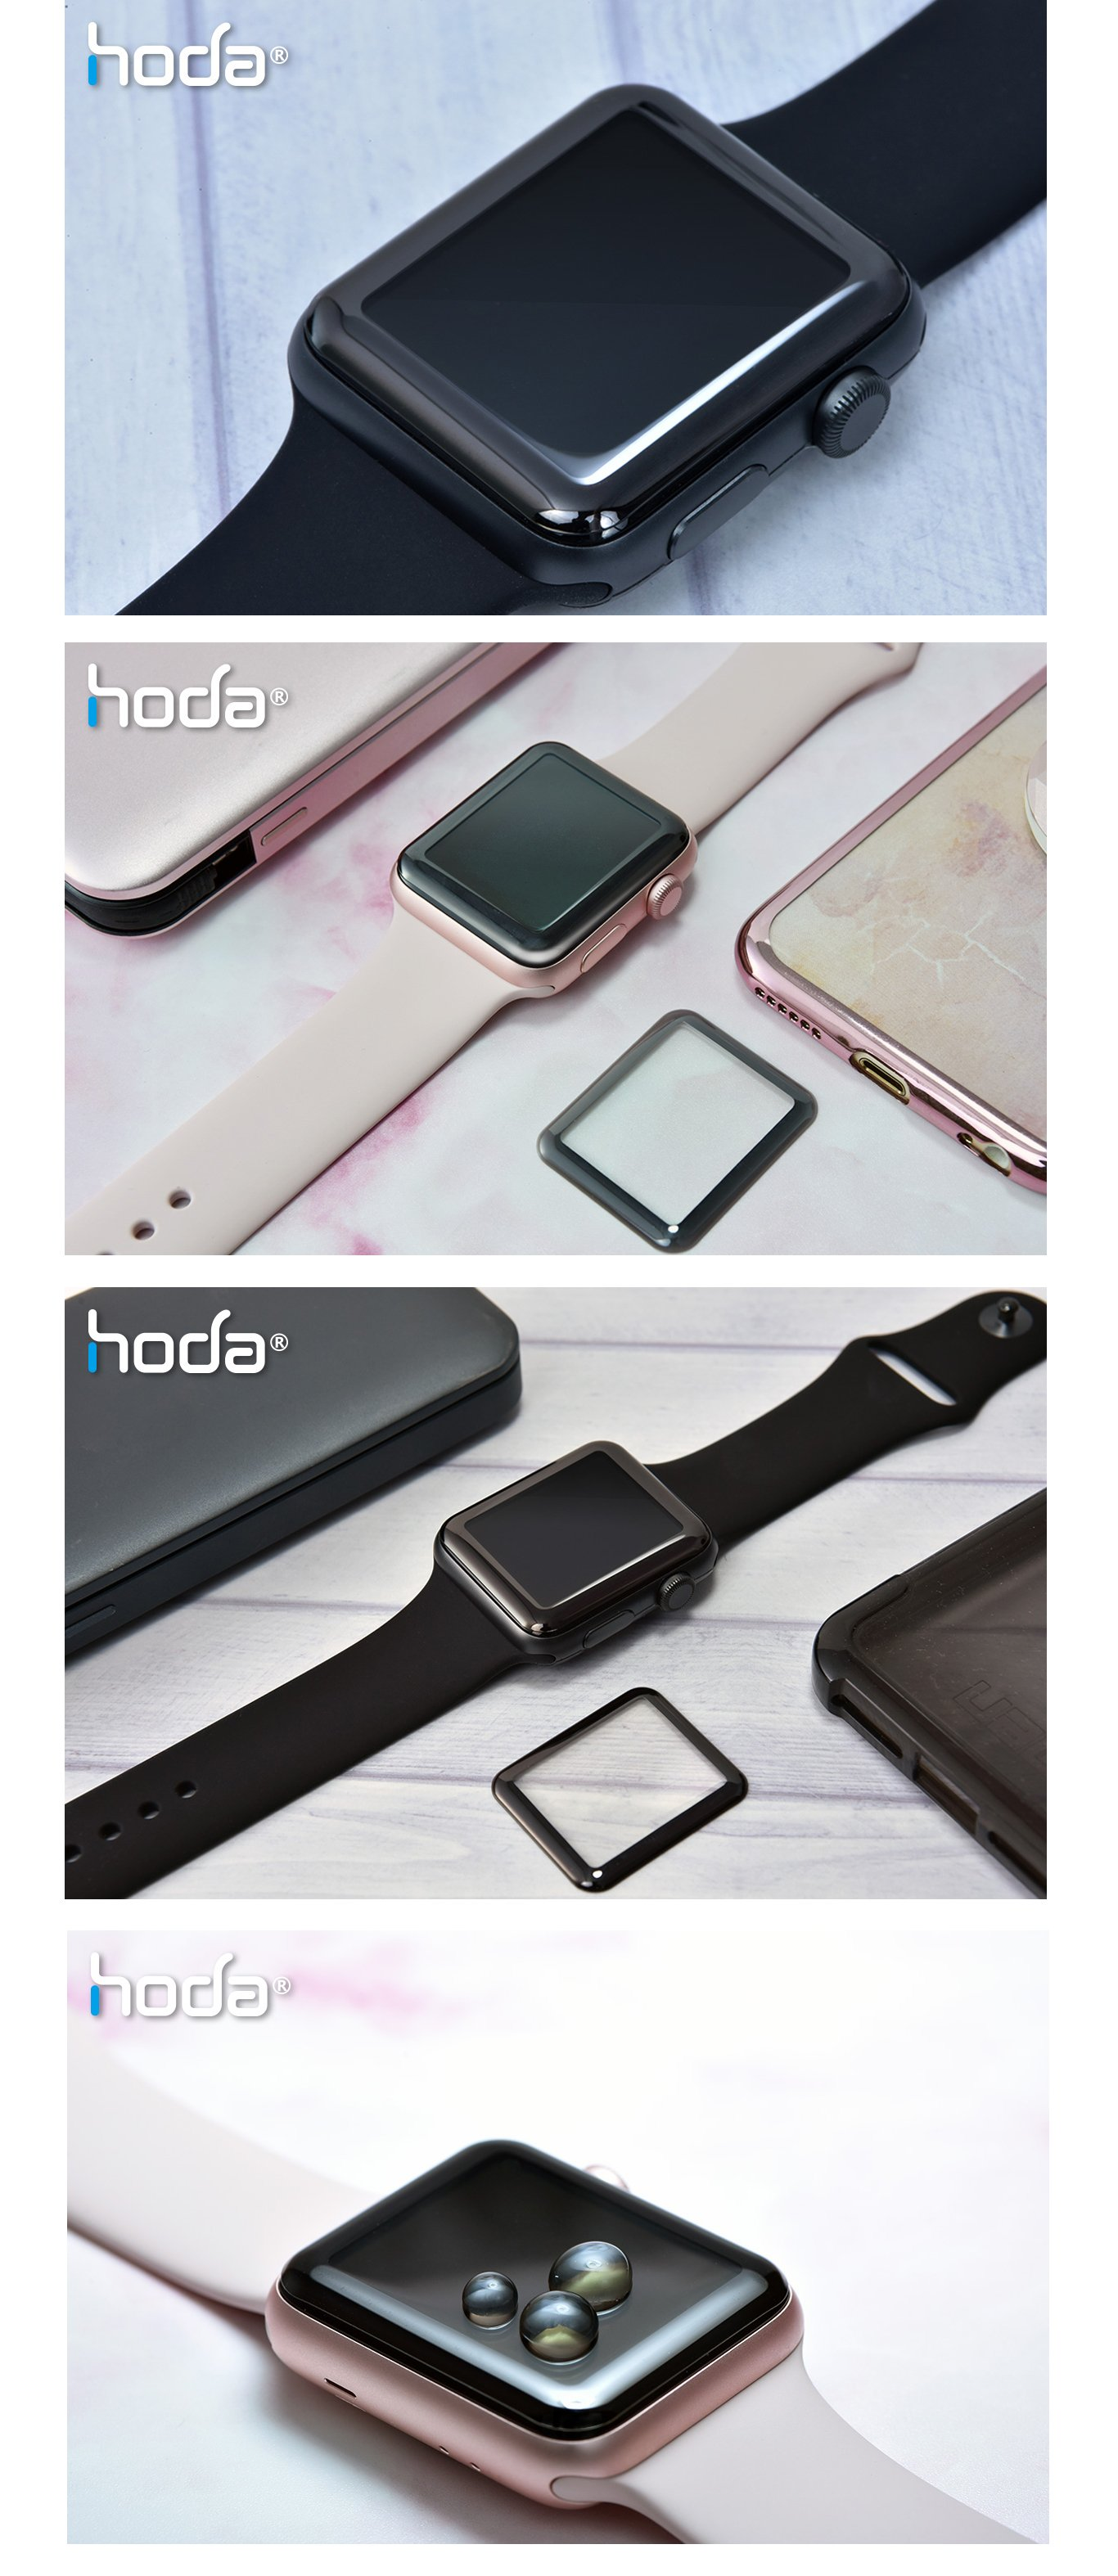 hoda-3D-full-glass-coverage-apple-watch-series-4-44mm-black-3